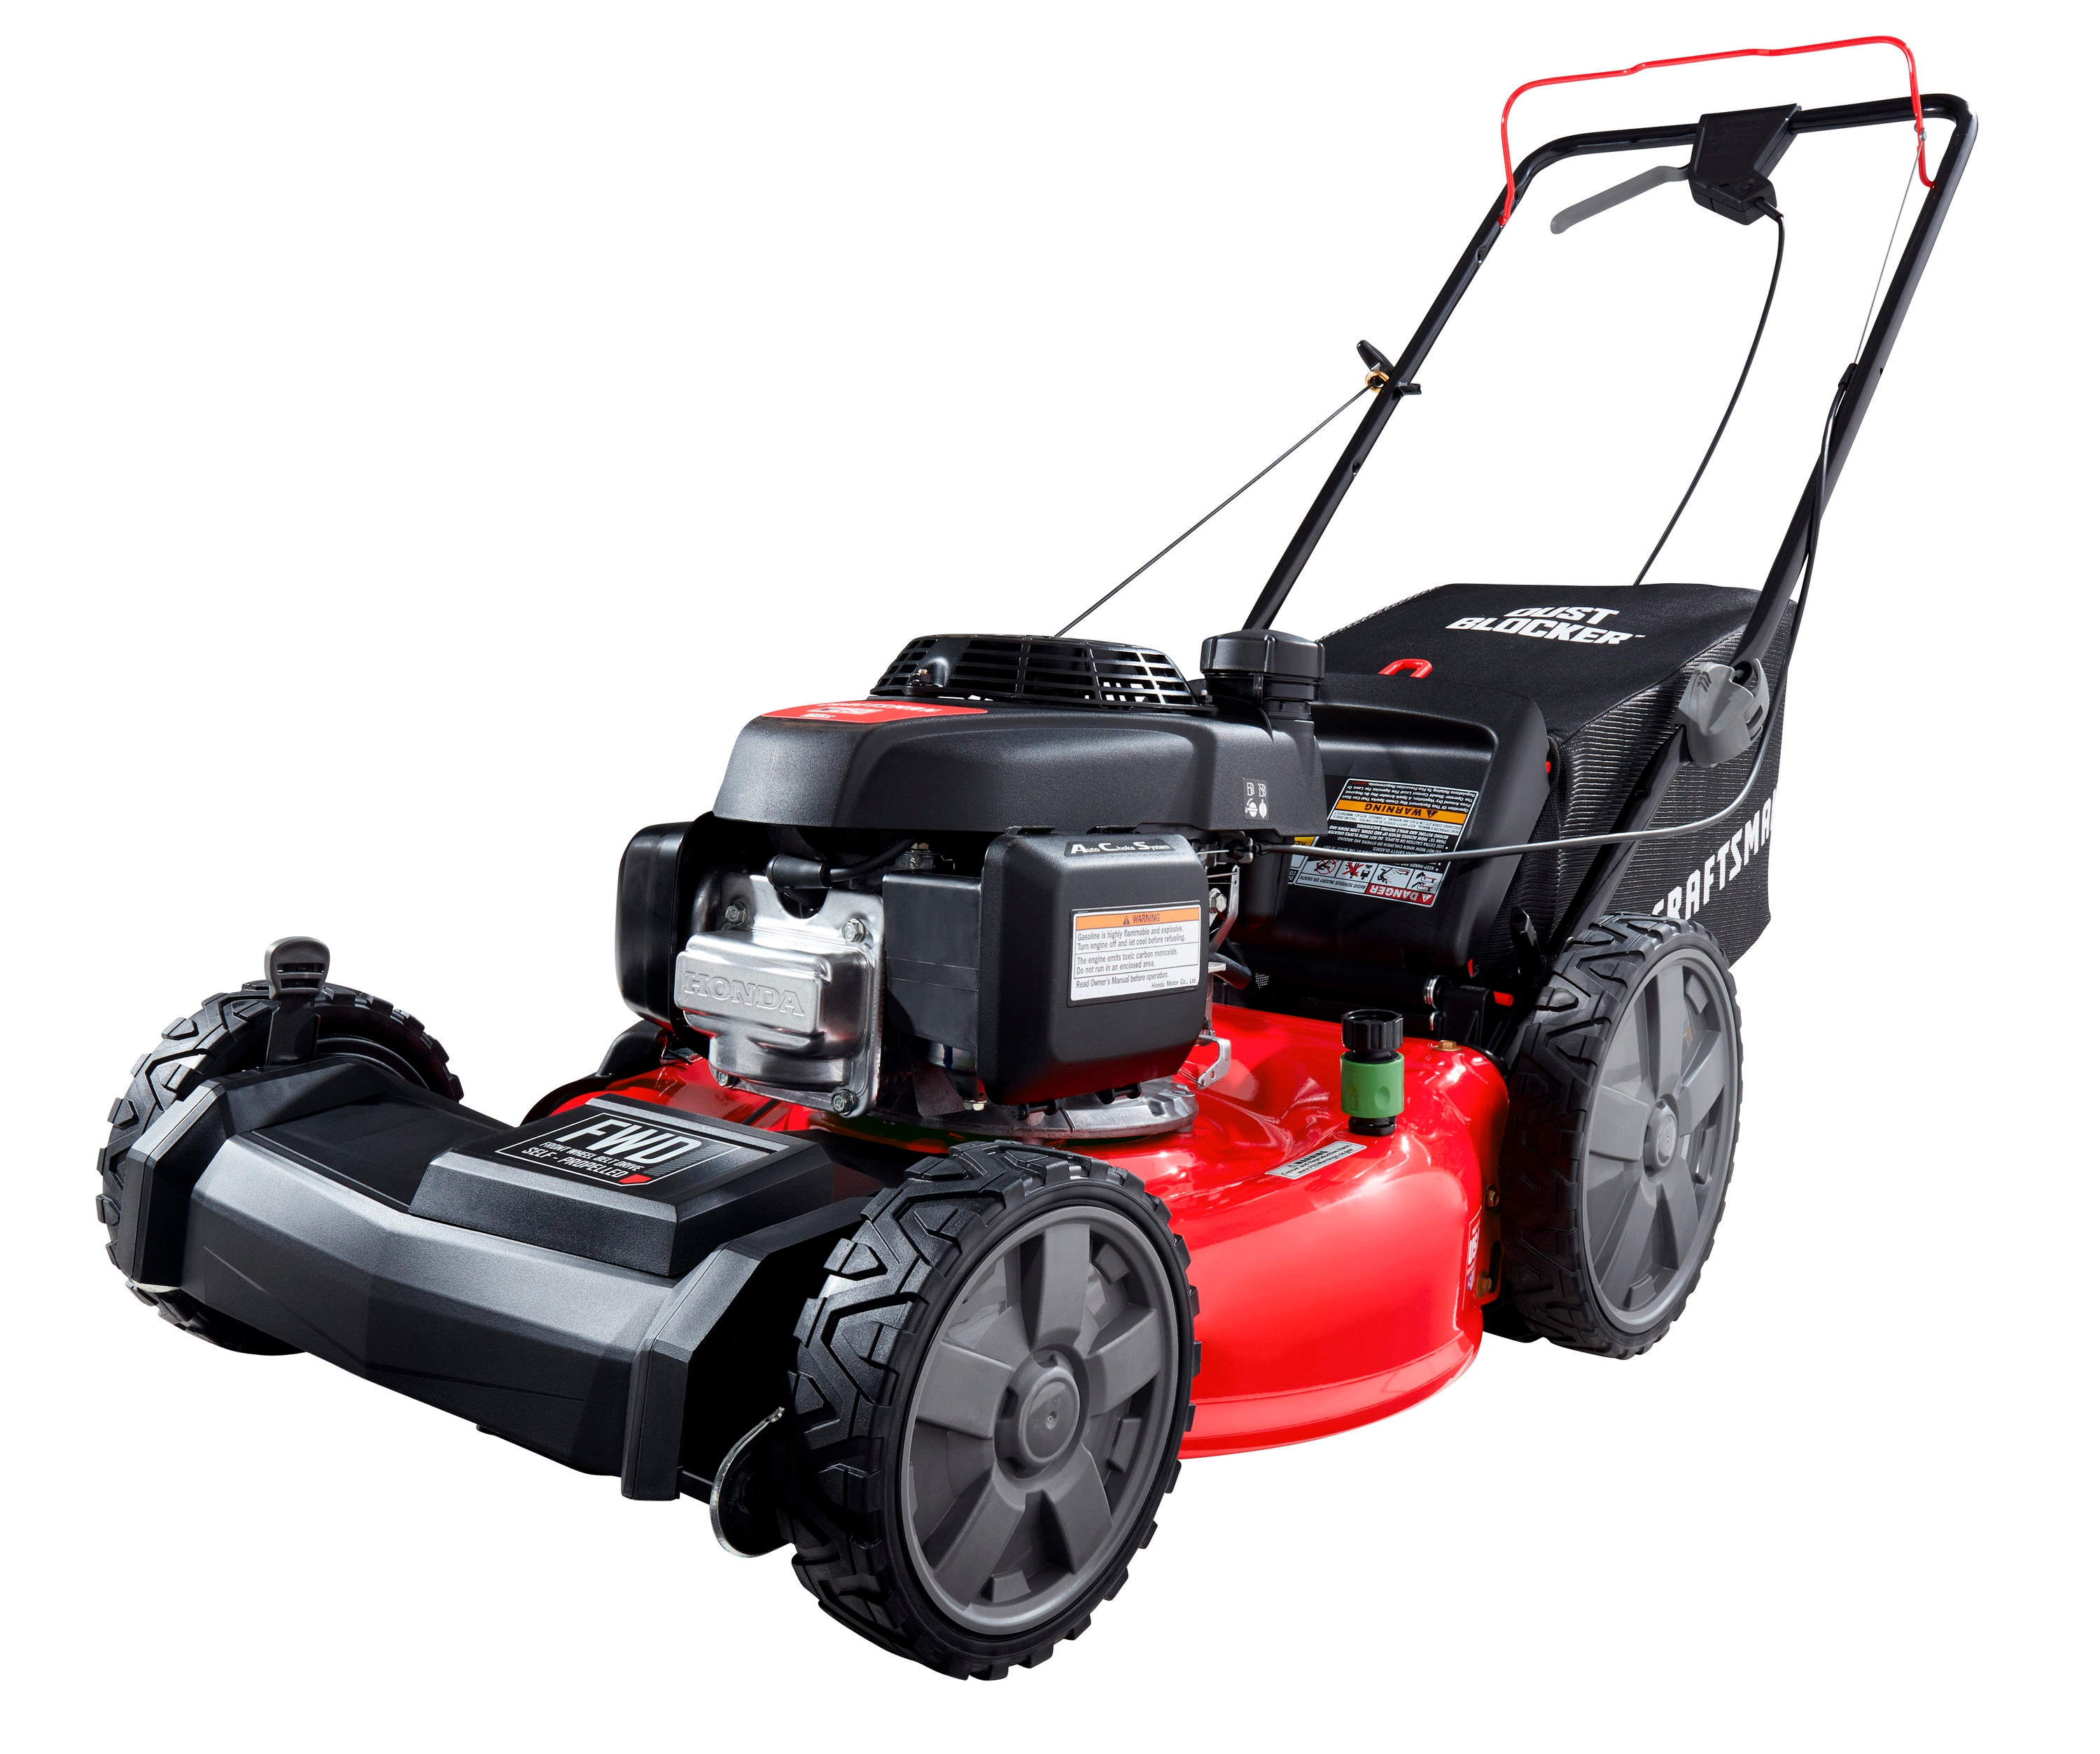 Craftsman Craftsman M250 160 Cc 21 In Self Propelled Gas Push Lawn Mower With Honda Engine In The Gas Push Lawn Mowers Department At Lowes Com